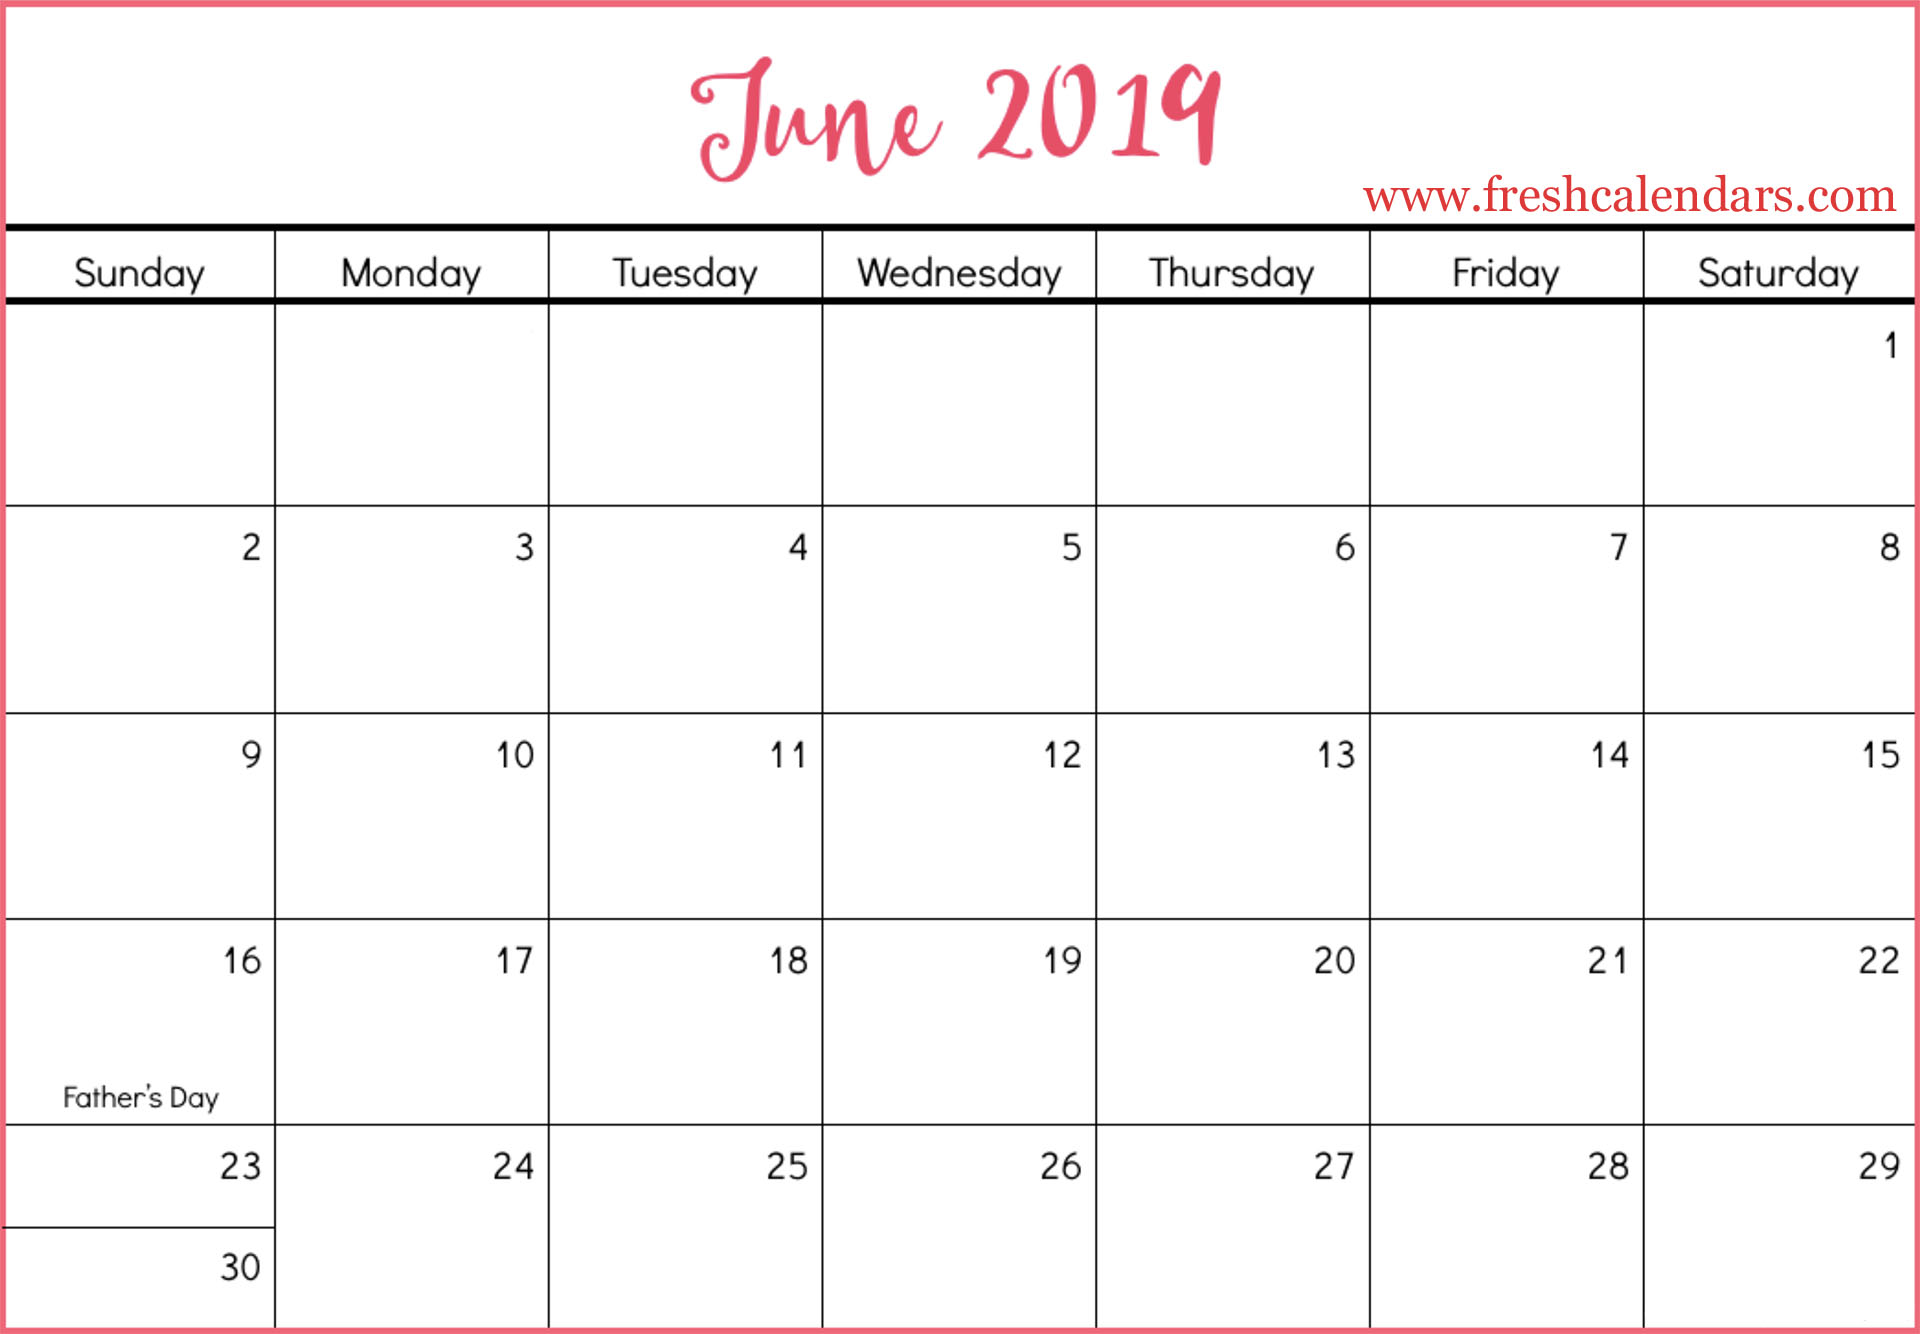 June 2019 Calendars Red Style